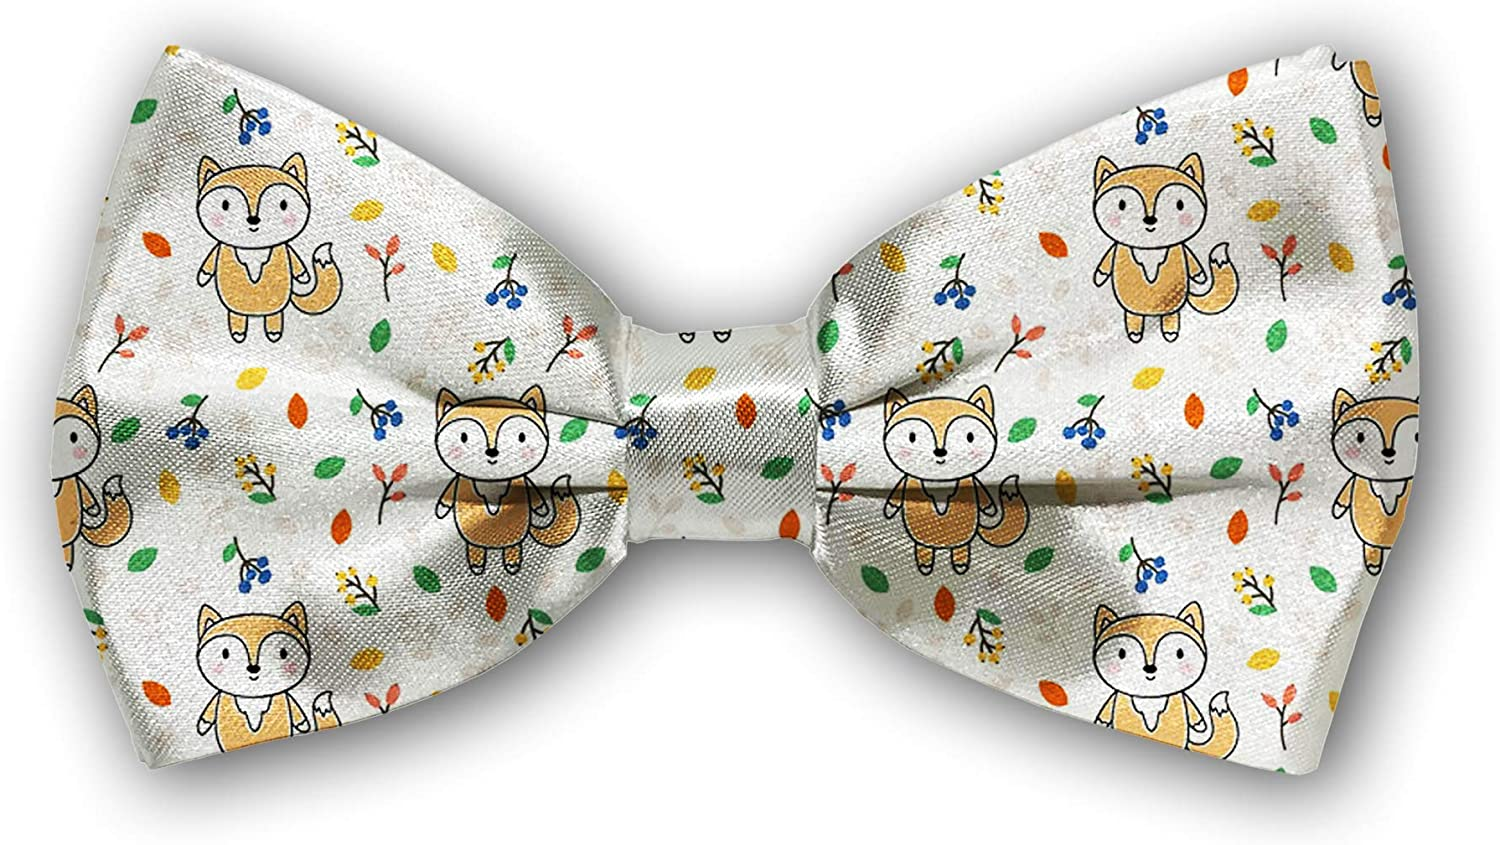 Genuine Bow Tie ! Super beauty product restock quality top! Tuxedo Butterfly Cotton Boys Mens for Bowtie Adjustable